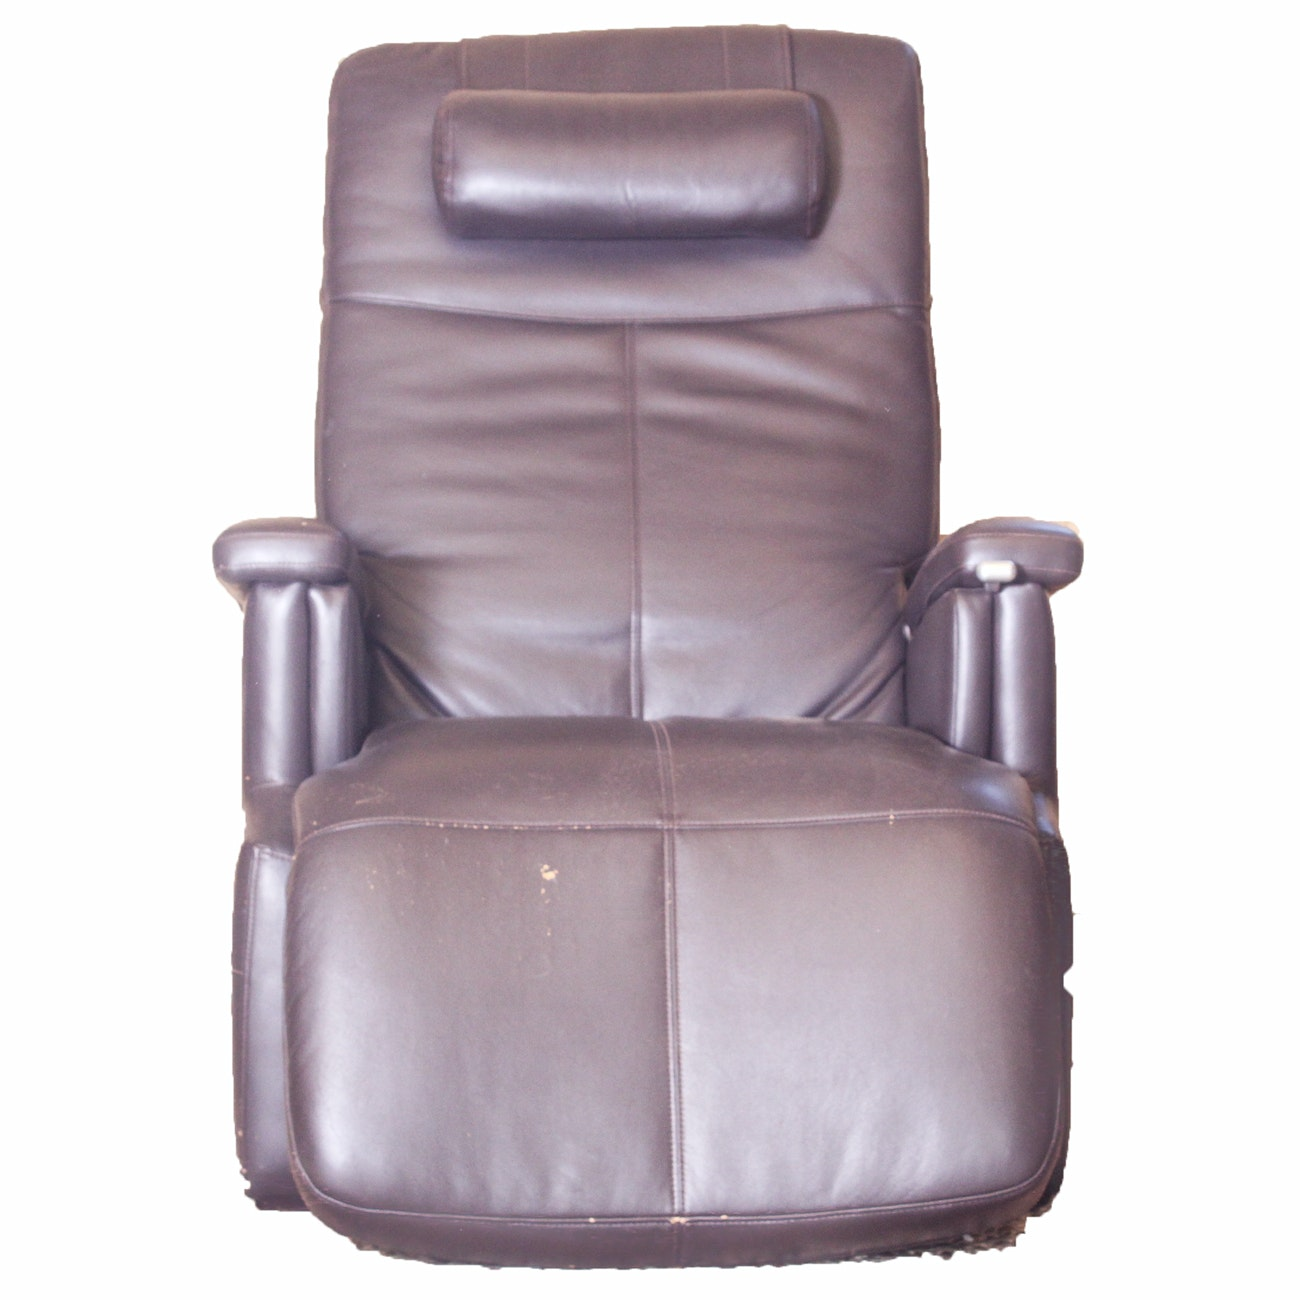 Electric-Powered Recliner by Human Touch